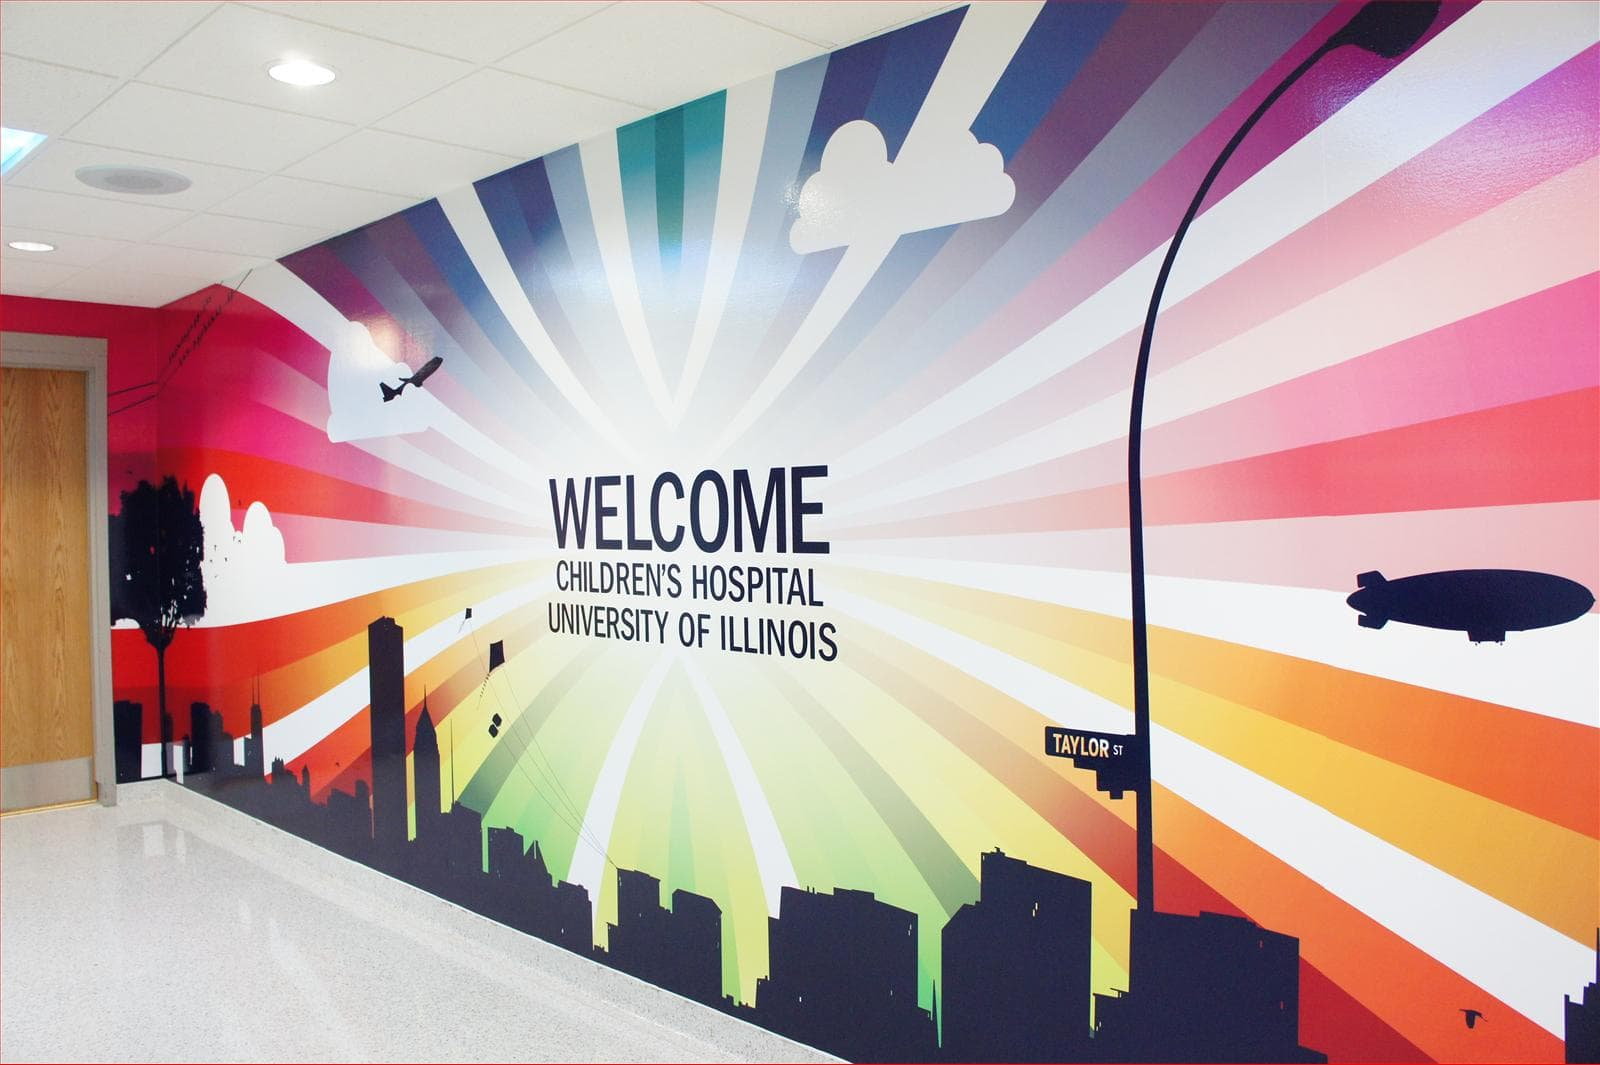 Welcome Children's Hospital University of Illinois Wall Sign